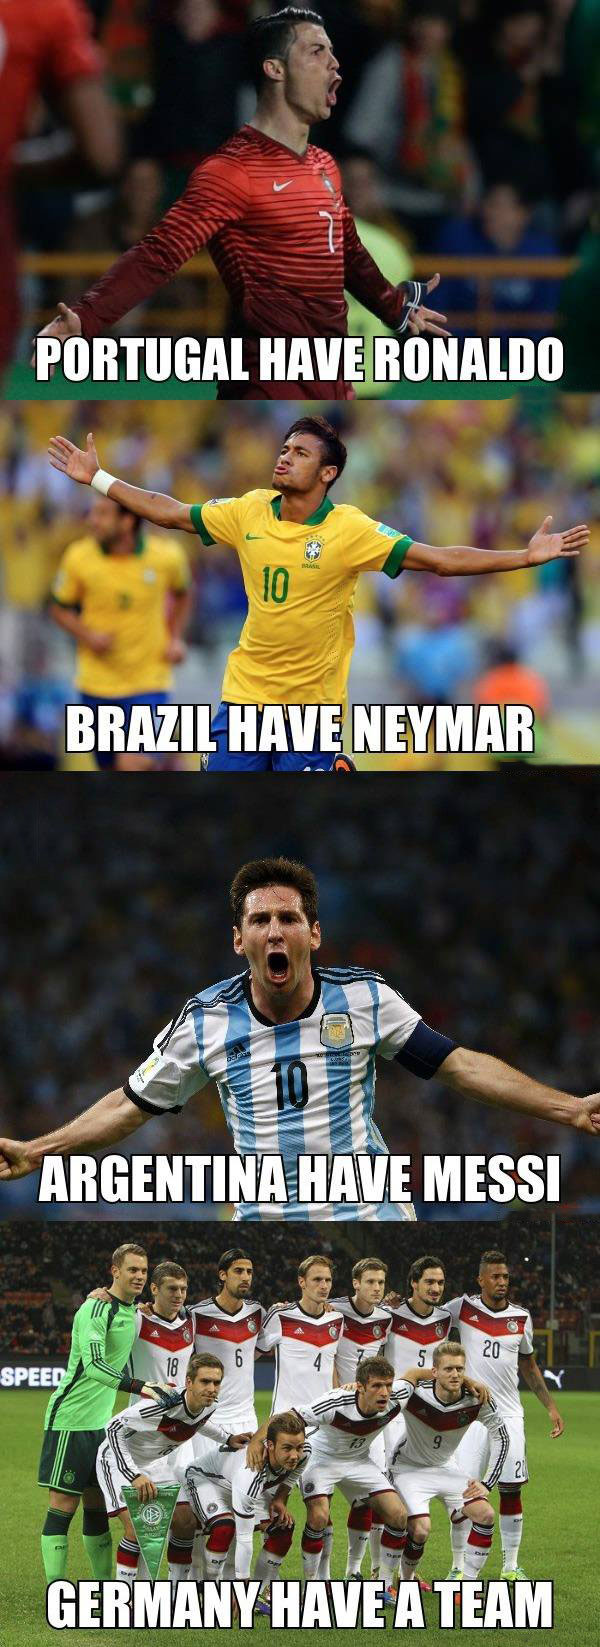 portugal have ronaldo, brazil have keymar, argentina have messi, germany have a team, world cup 2014, fifa